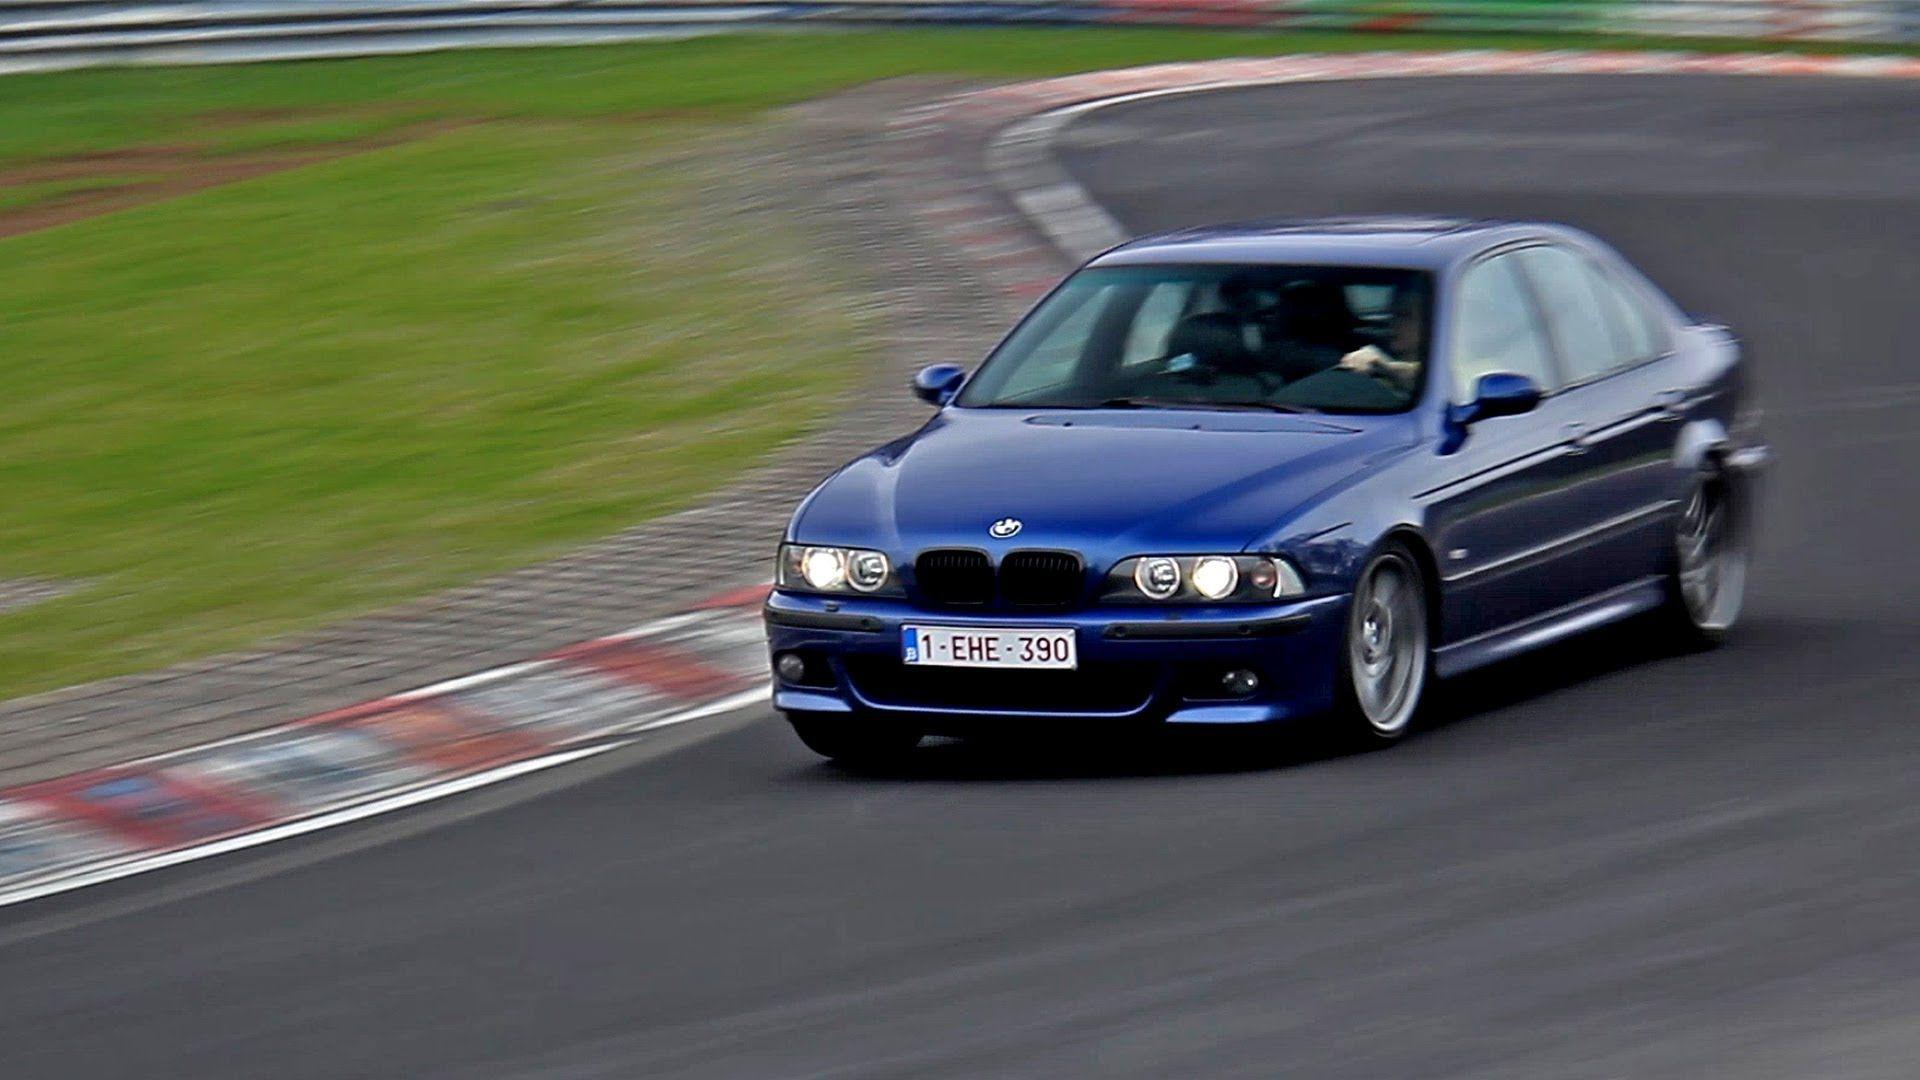 BMW M5 E39 LOUD Sounds at the Nürburgring!